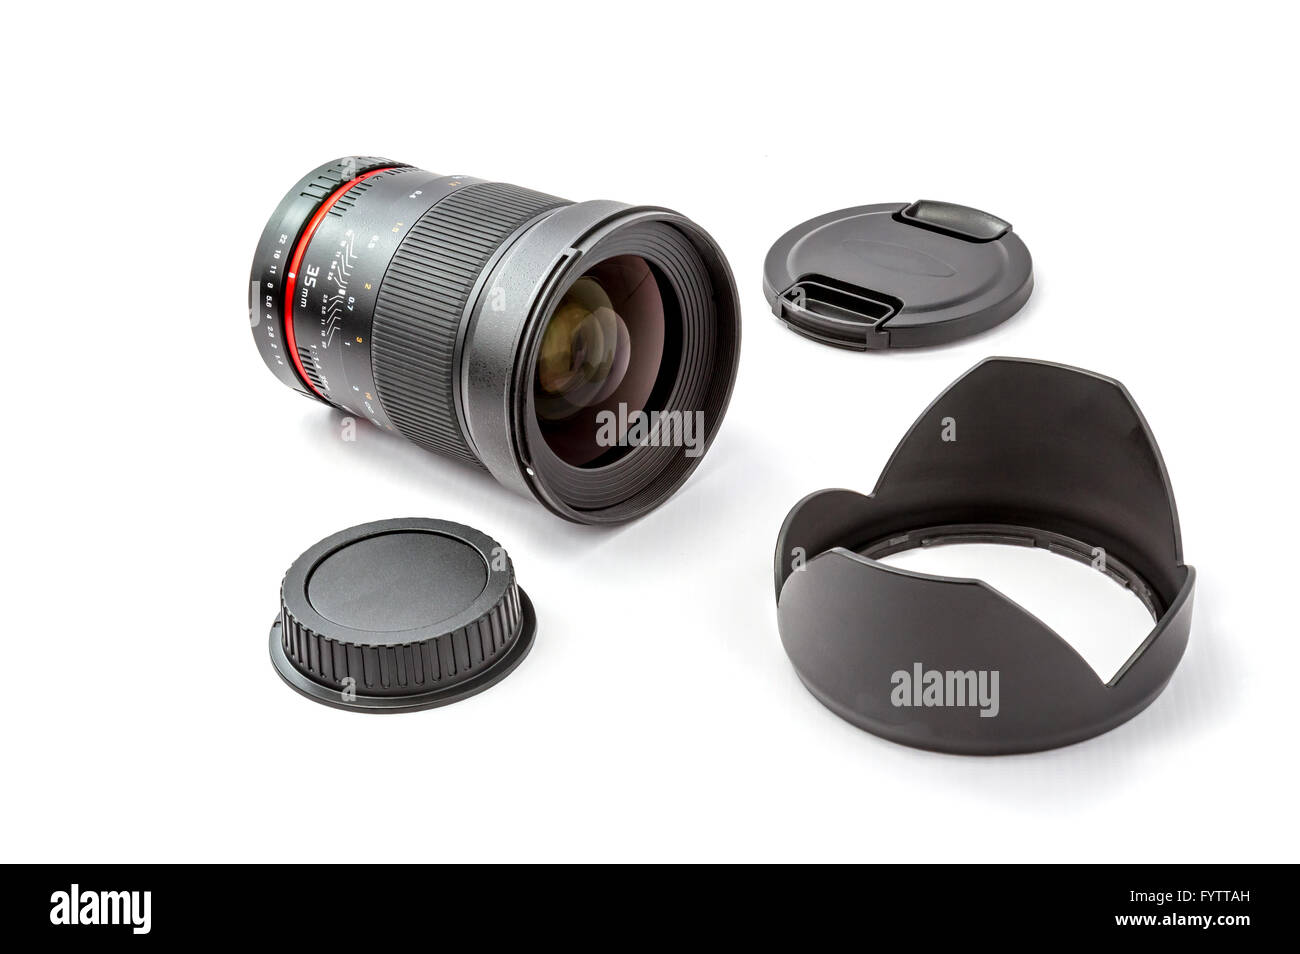 Lens for SLR camera - Stock Image